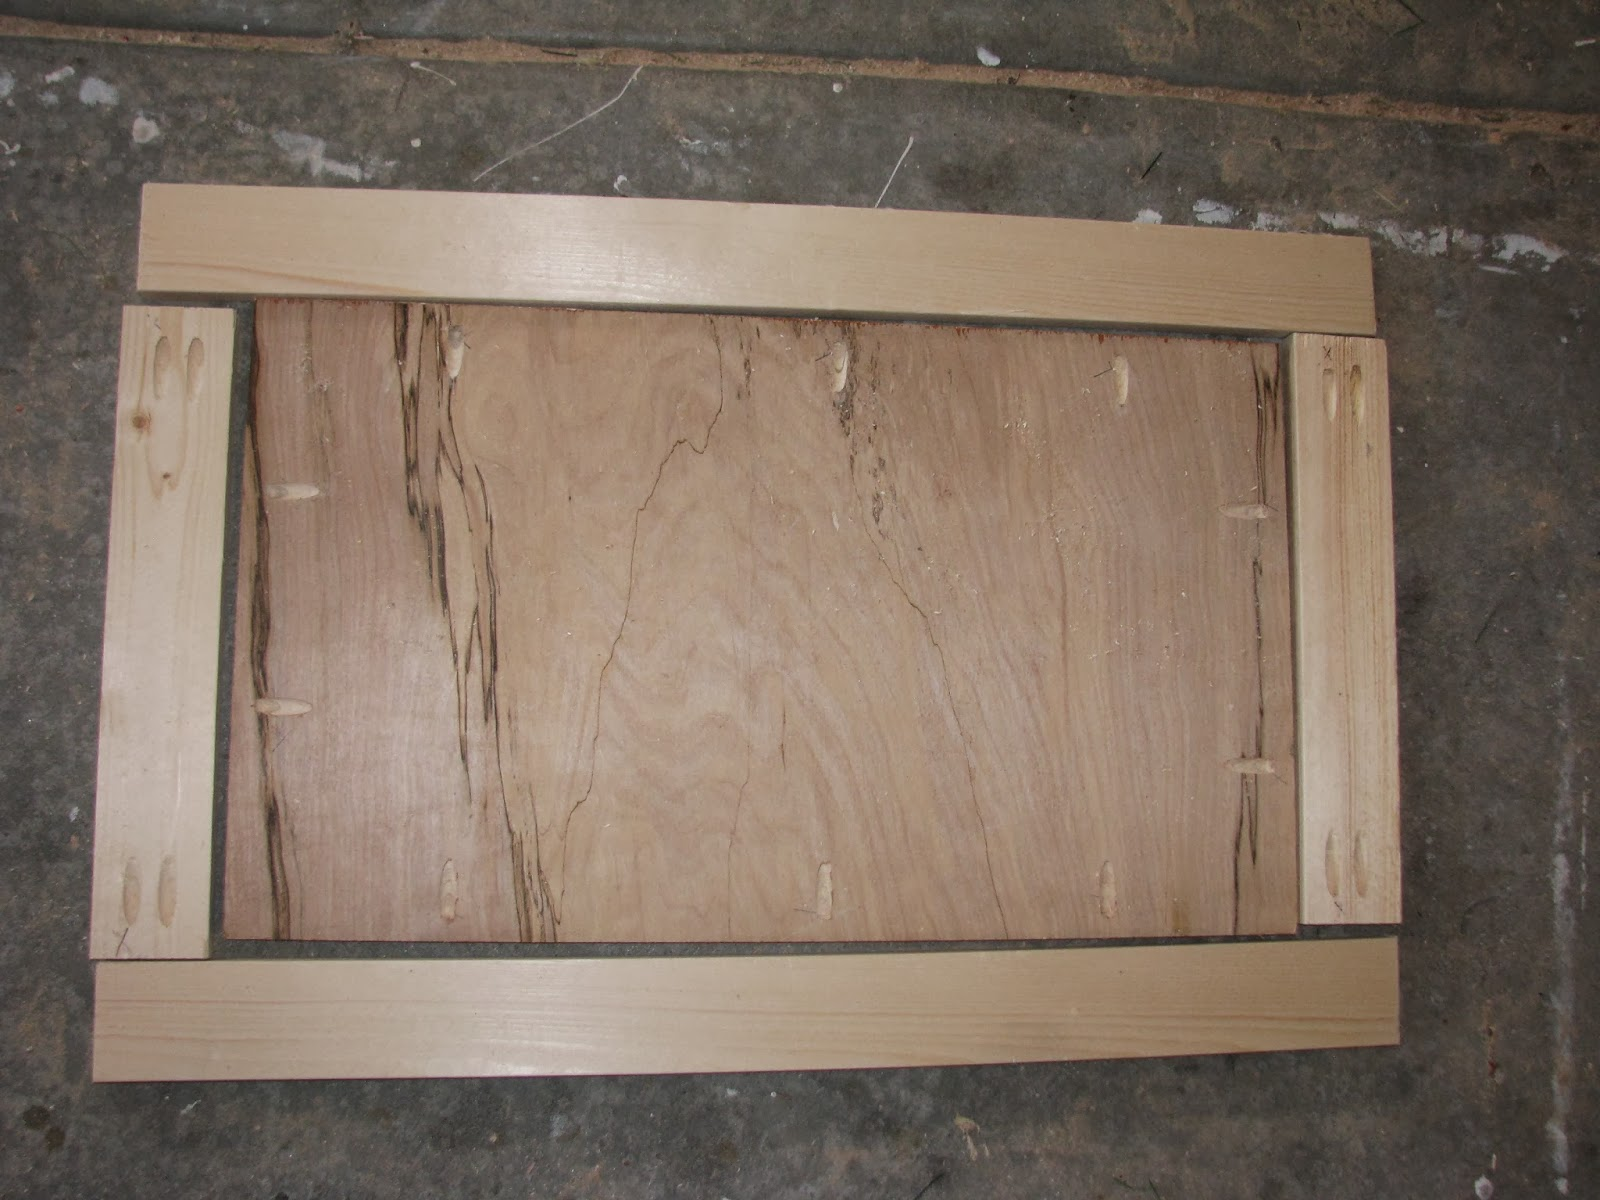 raised panel door templates - door making jig diy shaker cabinet doors kreg jig